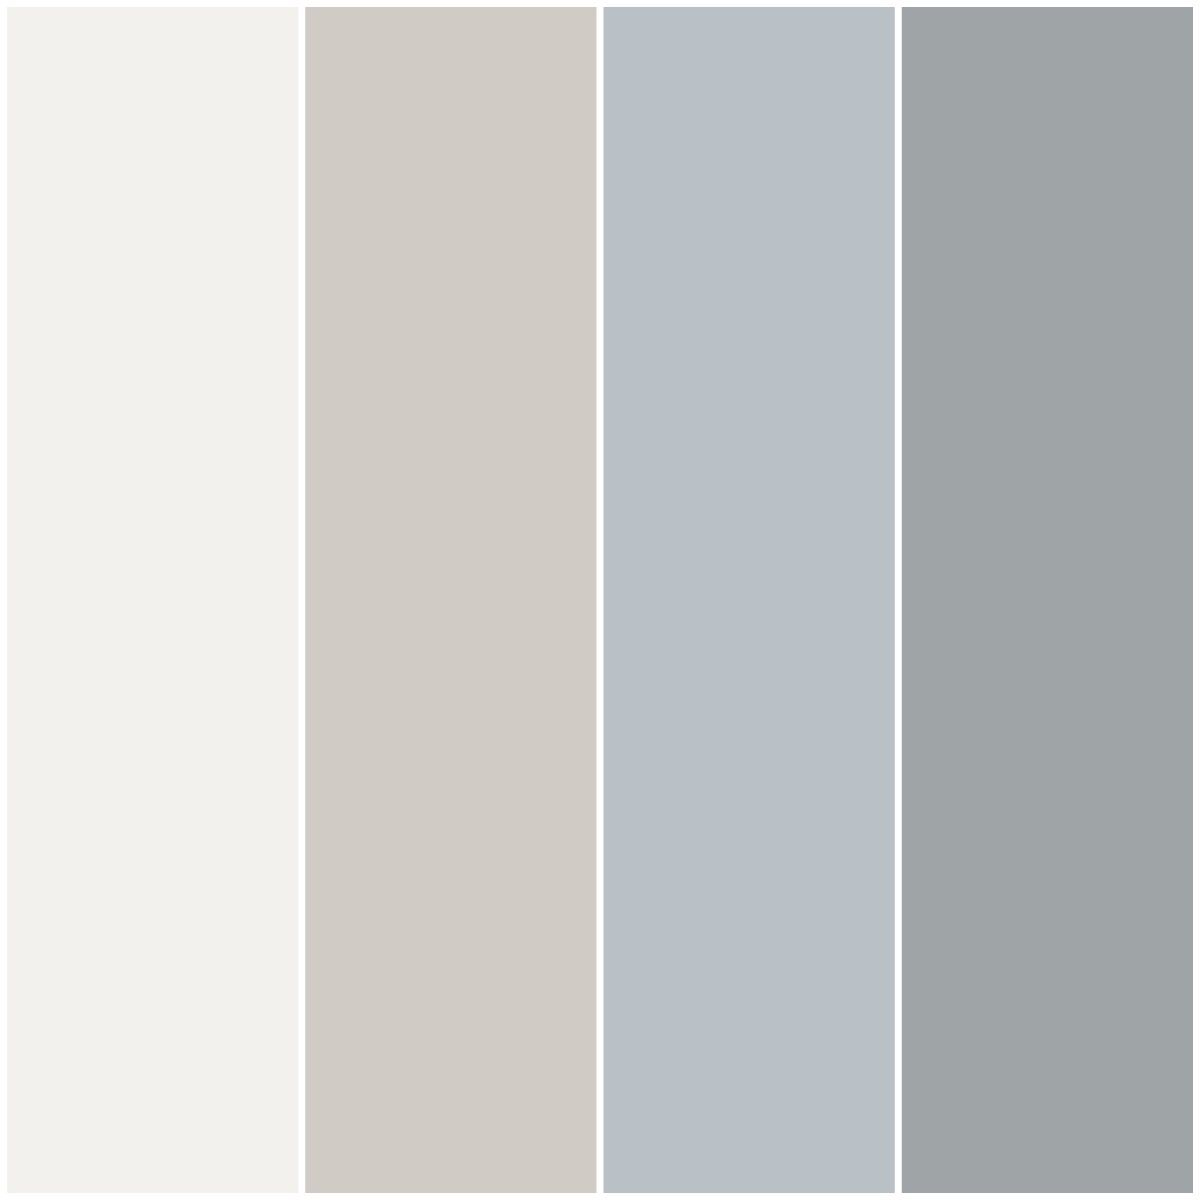 Color palette i made for my house with behr paint in nano for Paint color palette